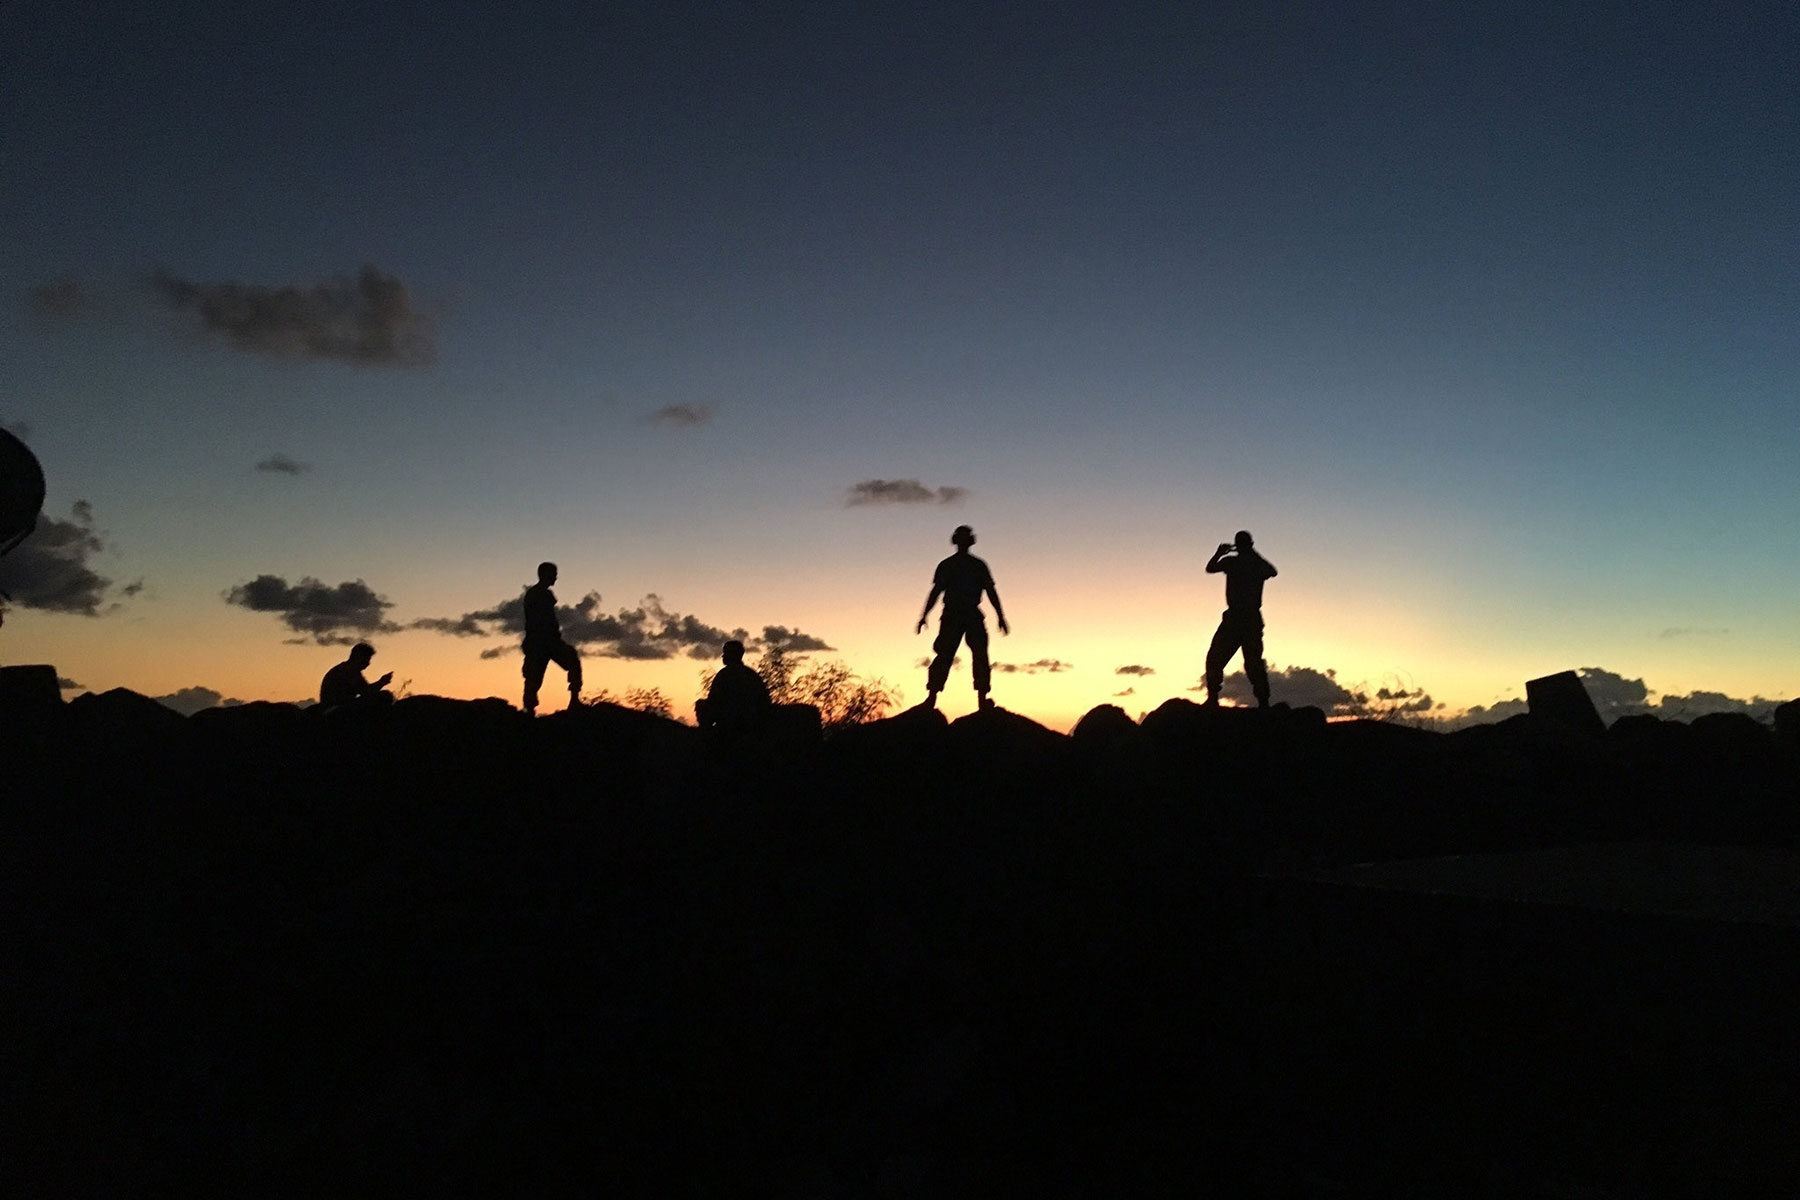 The North Carolina National Guard's 145th Logistics Readiness Squadron (LRS) Small Air Terminal team stands in the Caribbean sunset during their mission to the U.S Virgin Islands. (North Carolina National Guard)